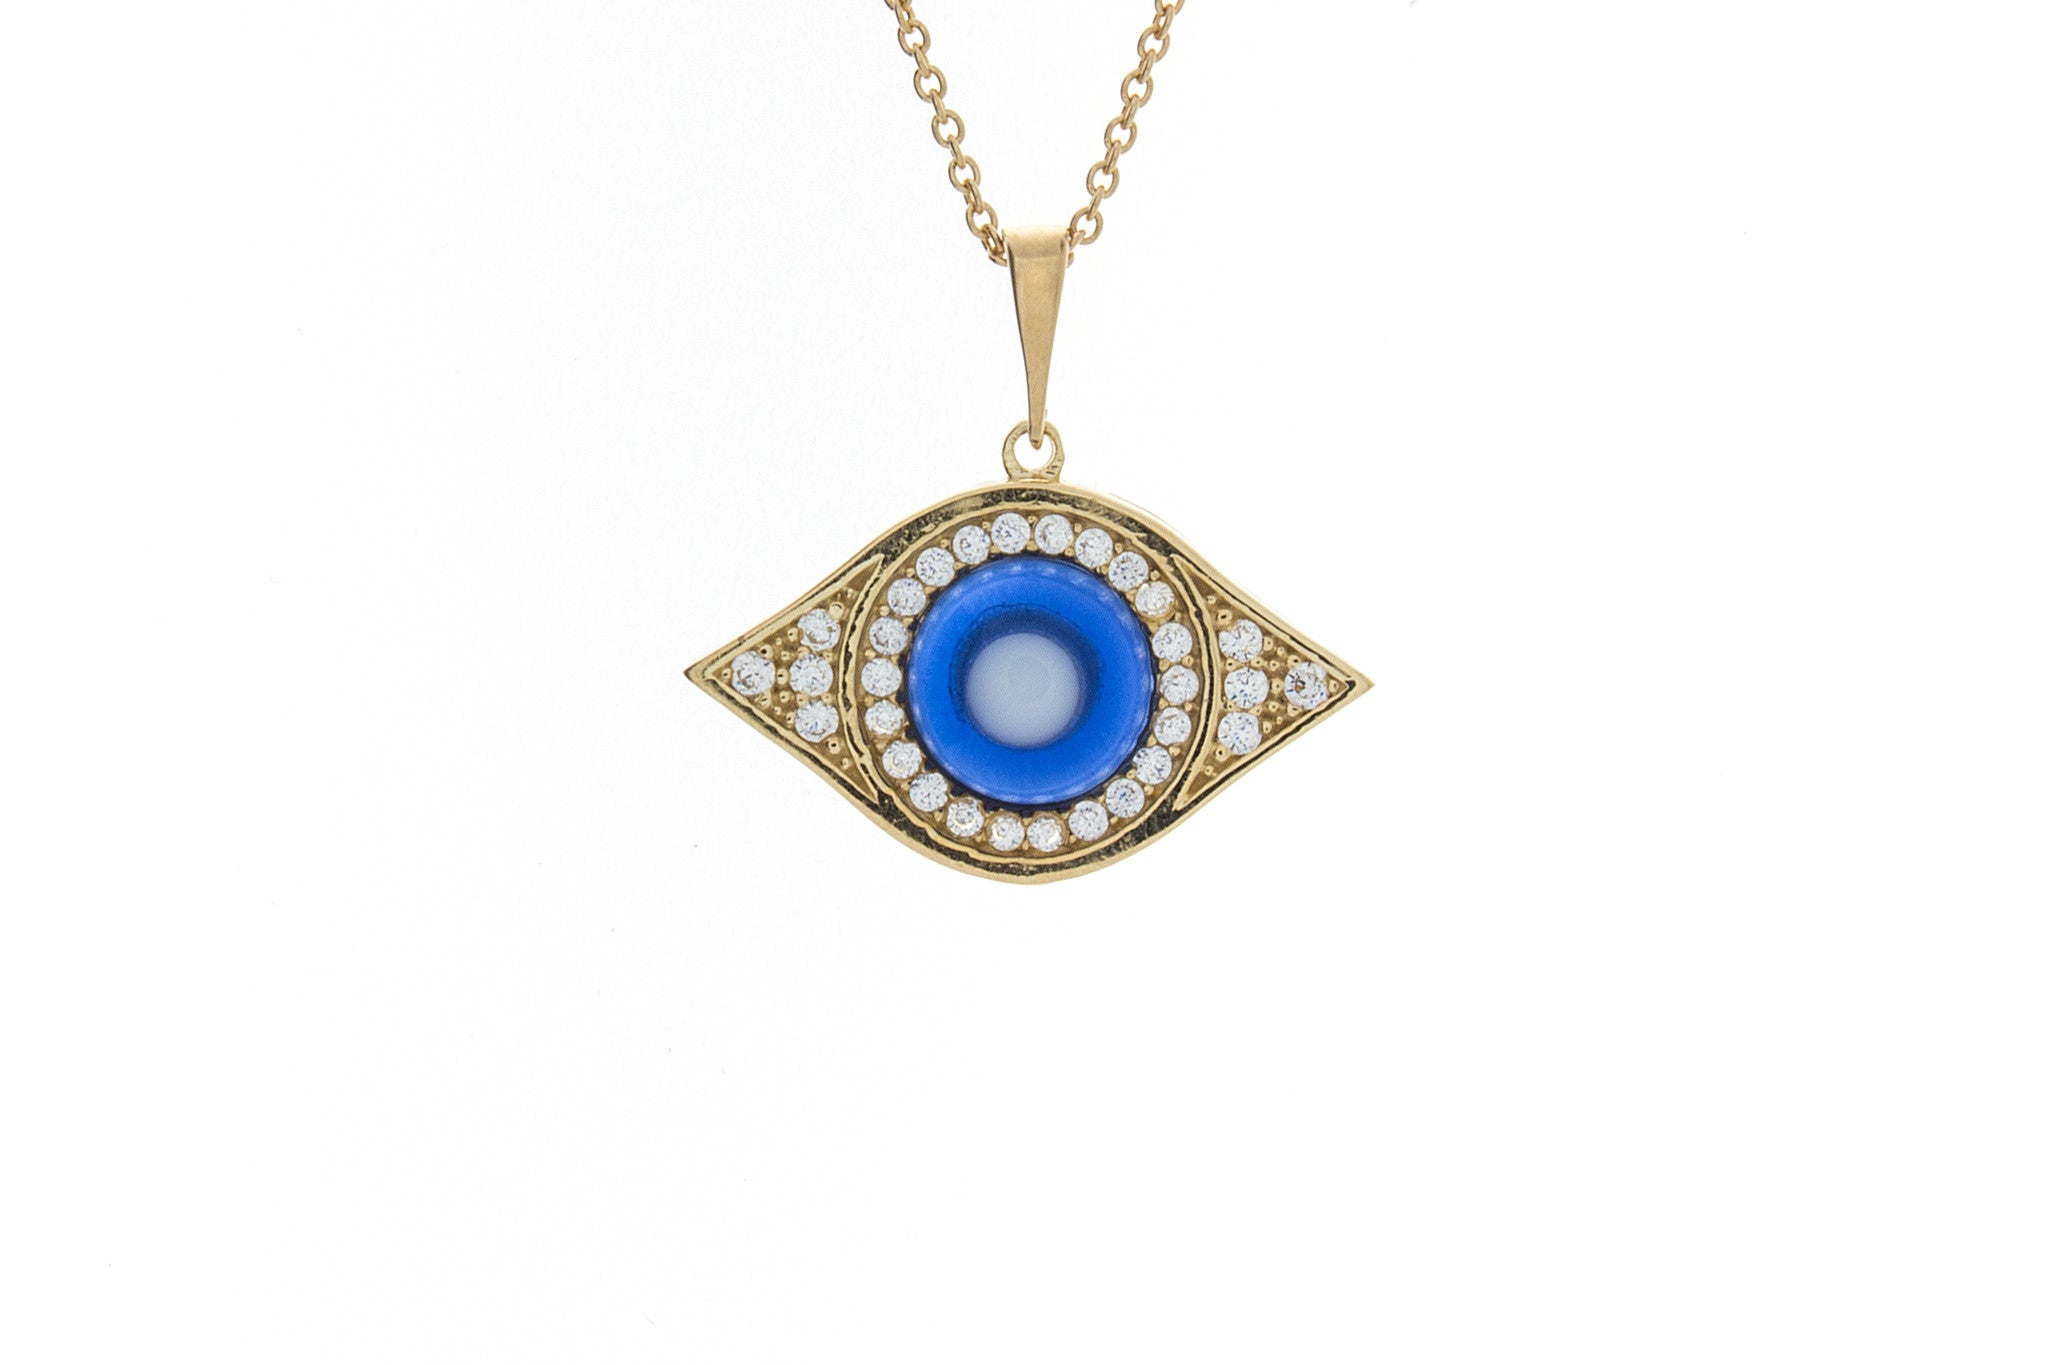 moore products pendant diamond black evil necklace white elizabeth eye and